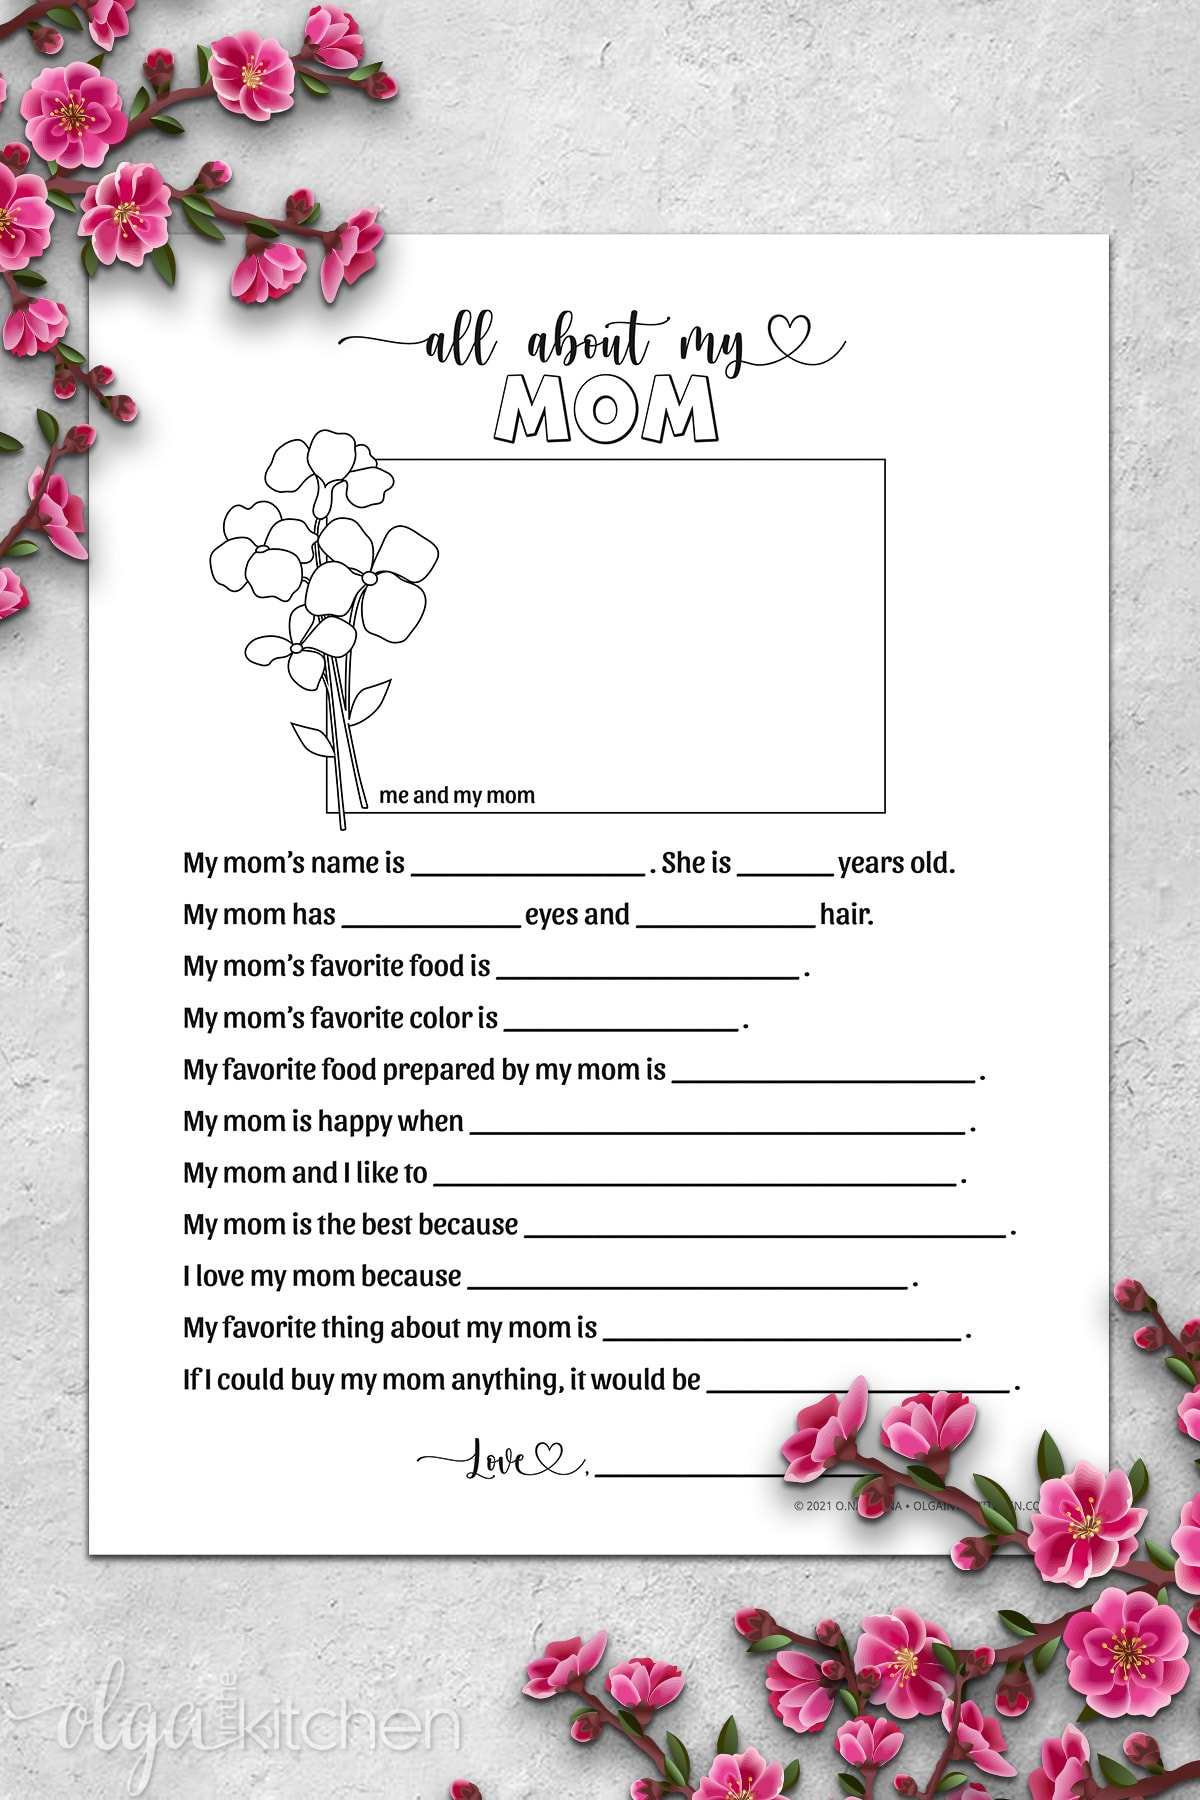 Printable All About My Mom Activity for kids.